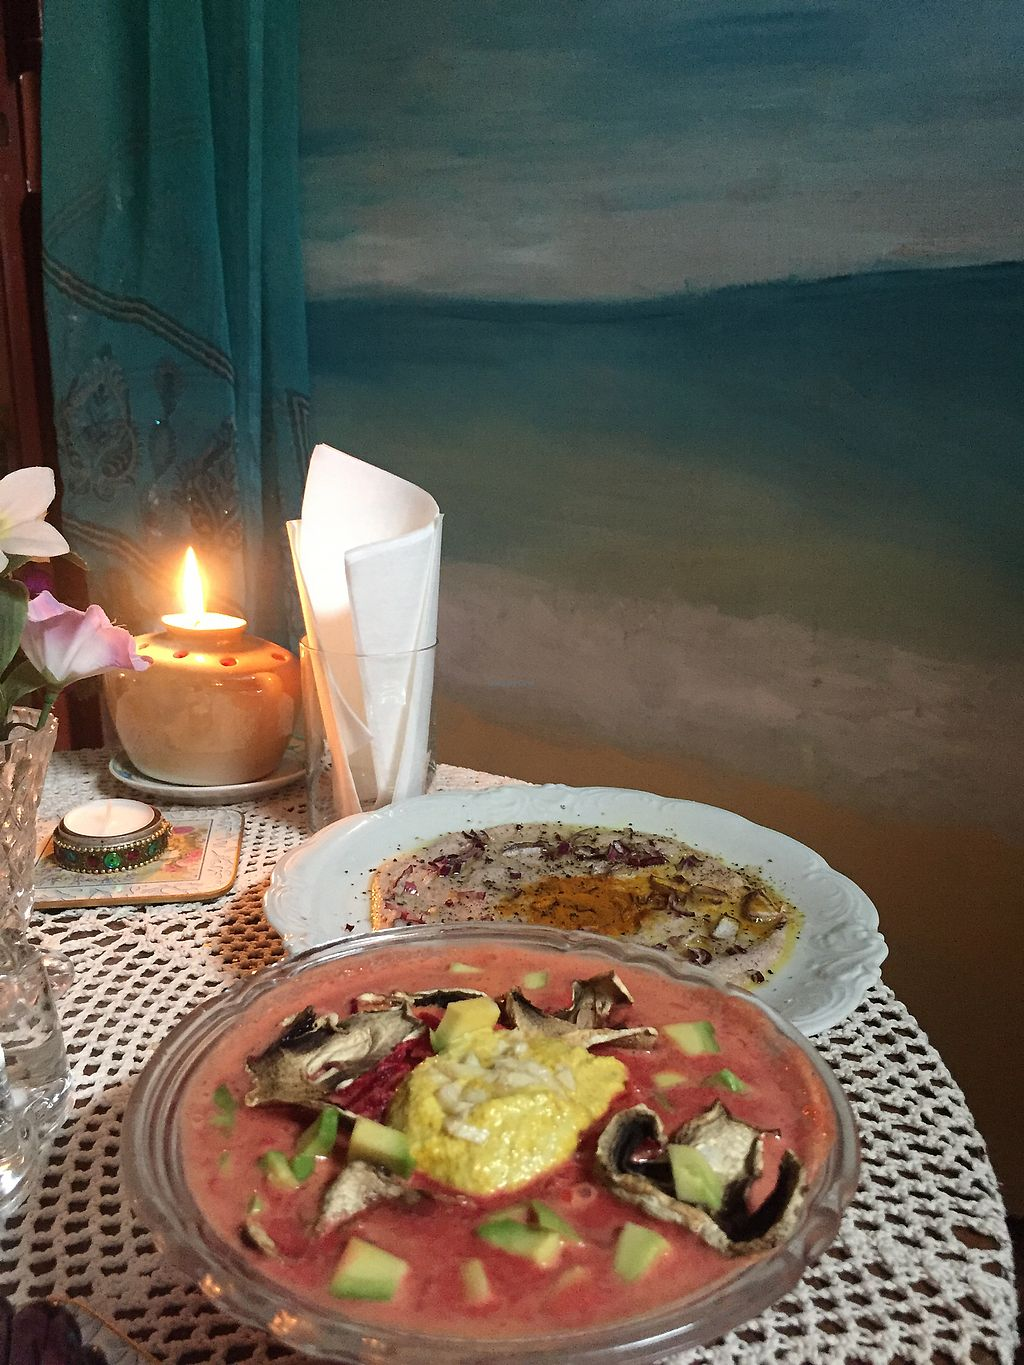 """Photo of Nata Raw  by <a href=""""/members/profile/plantsforants"""">plantsforants</a> <br/>Polish soup """" red borsch"""" which had fernentated cabbage, beatroot, carrot, tomato, awakado and sunflower cream. +&+ Raw """"omelette"""" from young coconut with onion and spices!! <br/> October 25, 2017  - <a href='/contact/abuse/image/85899/318765'>Report</a>"""